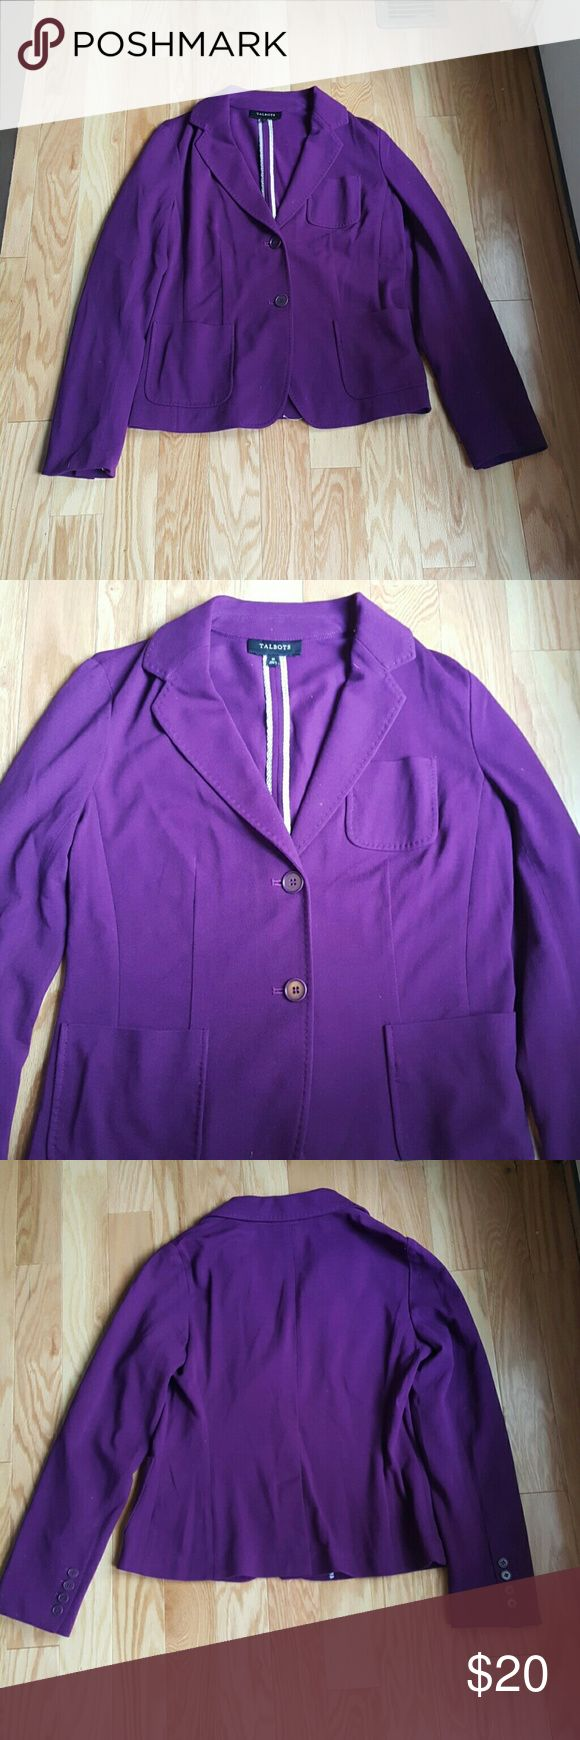 Talbots Purple Blazer Sz10 Size 10 purple Talbots Blazer  In like new condition  No signs of wear or fading! Talbots Jackets & Coats Blazers